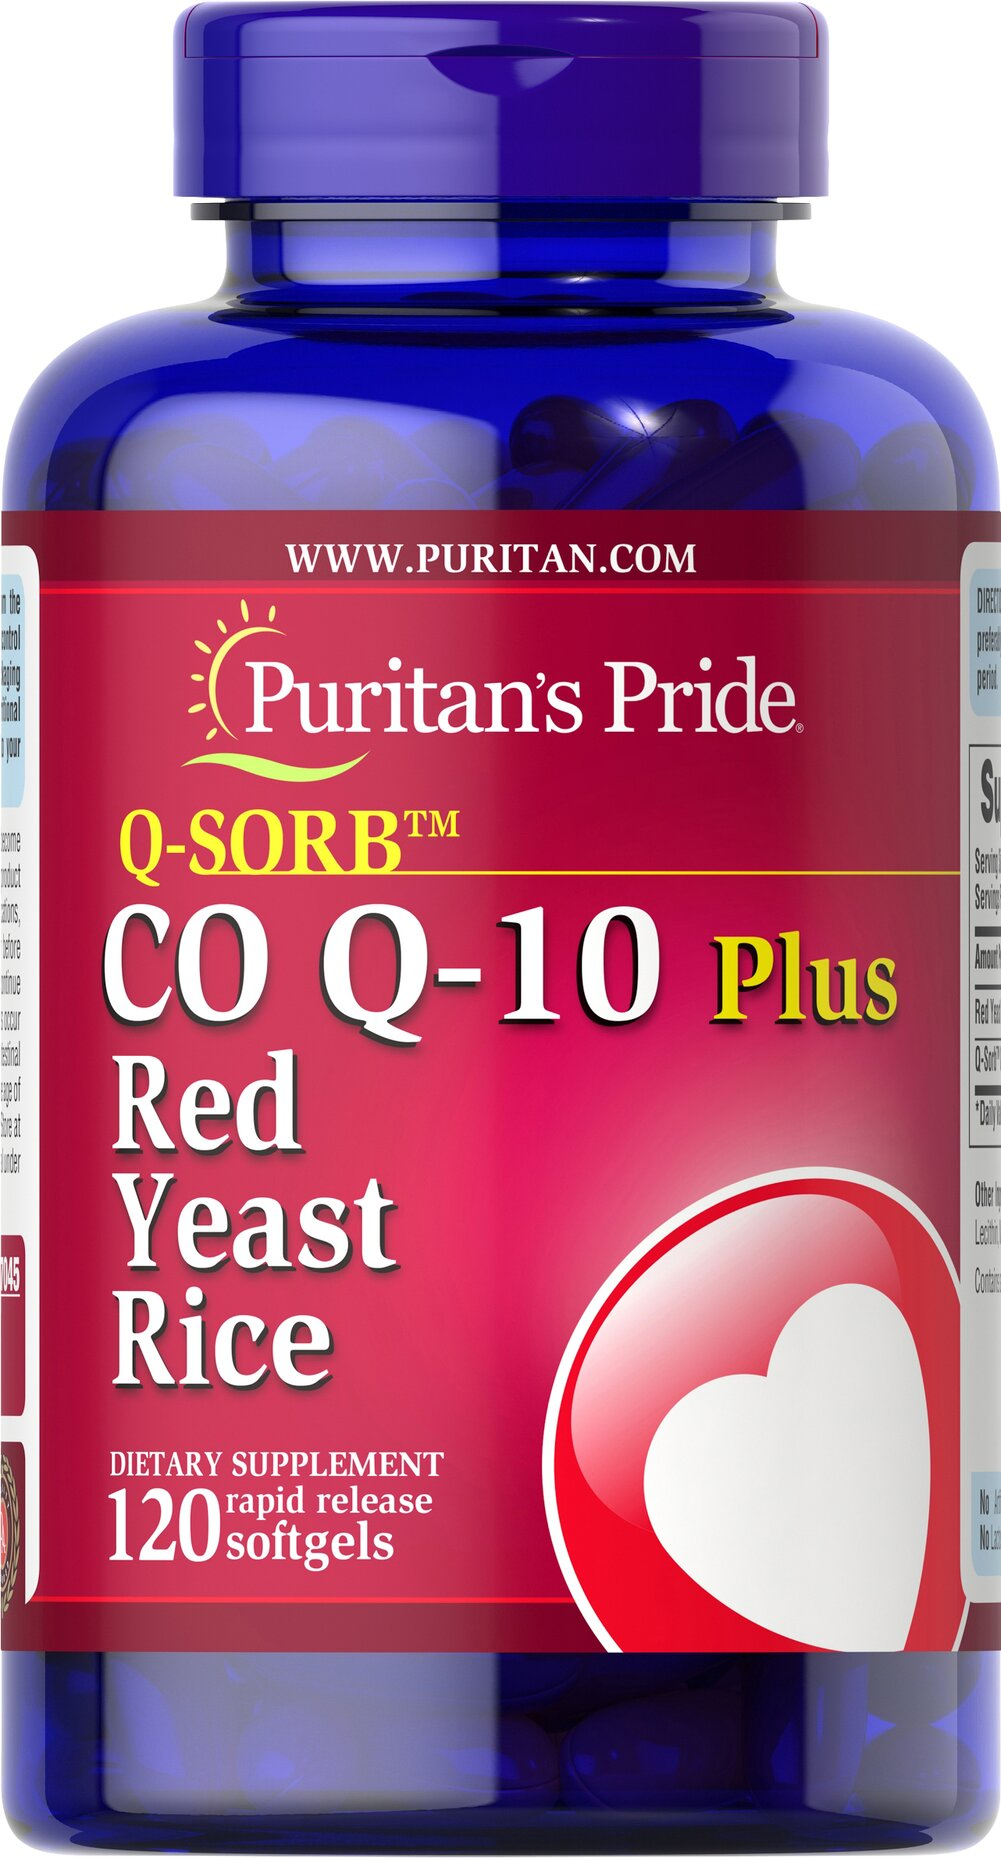 Q-SORB™ Co Q-10 60 mg plus Red Yeast Rice 600 mg <p>A powerful antioxidant combined with an ingredient whose traditional goodness has been valued for centuries can only mean one thing… <strong>Co Q-10 Plus Red Yeast Rice.</strong></p><p>Red Yeast Rice has been a part of the traditional Chinese diet for centuries, and Coenzyme Q-10 promotes energy production and is an important contributor to antioxidant and heart health.** Only one softgel a day brings you these man